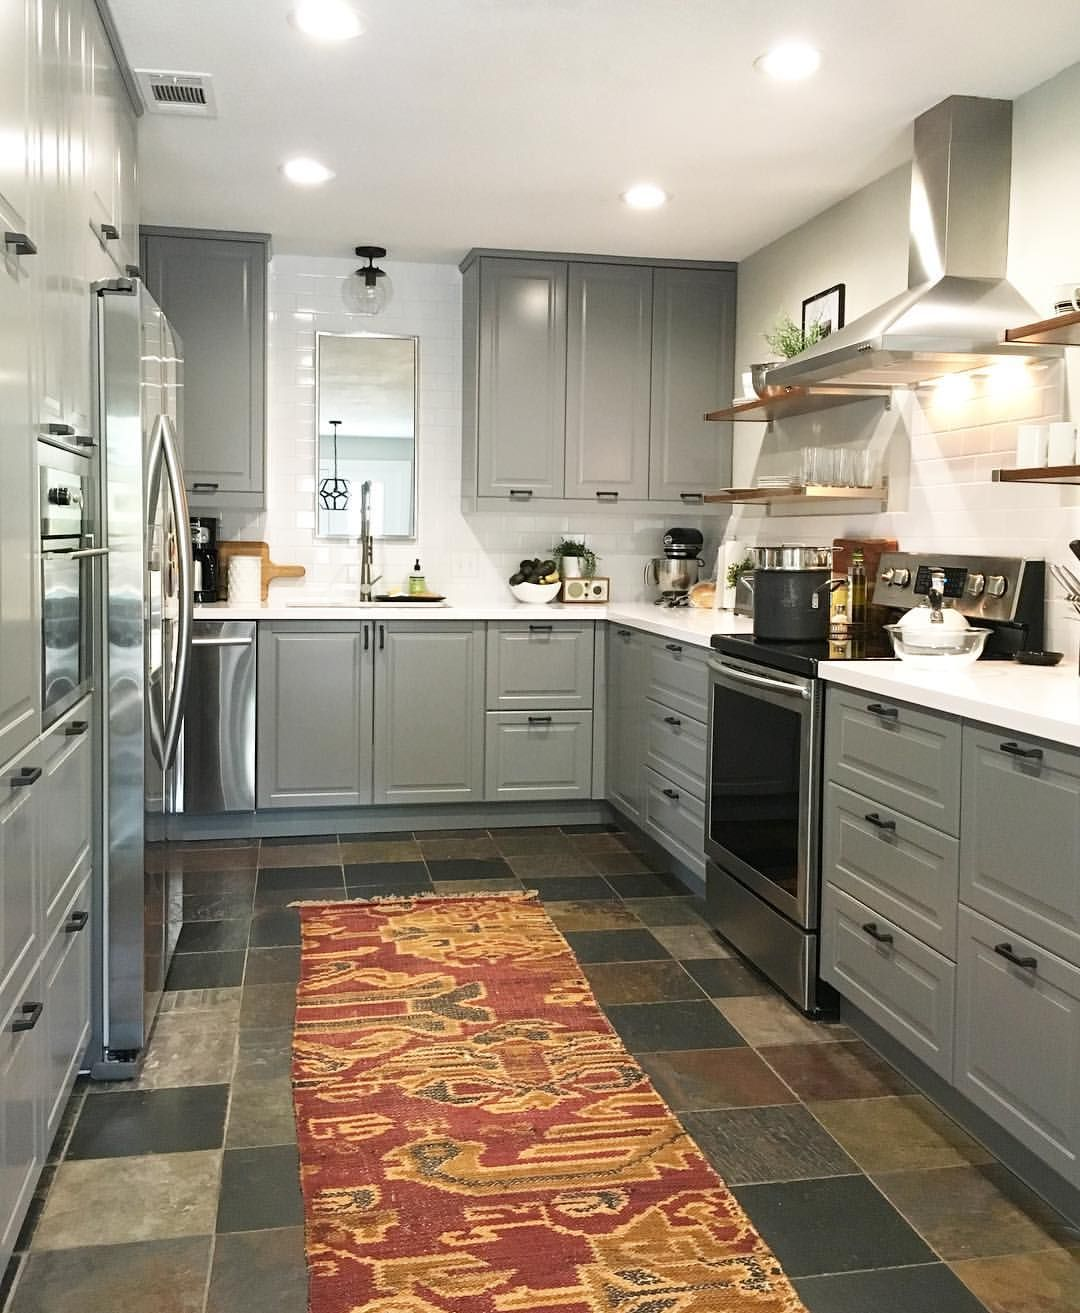 Matte Kitchen Cabinets Bodbyn Grey Ikea Kitchen White Quartz Countertops White